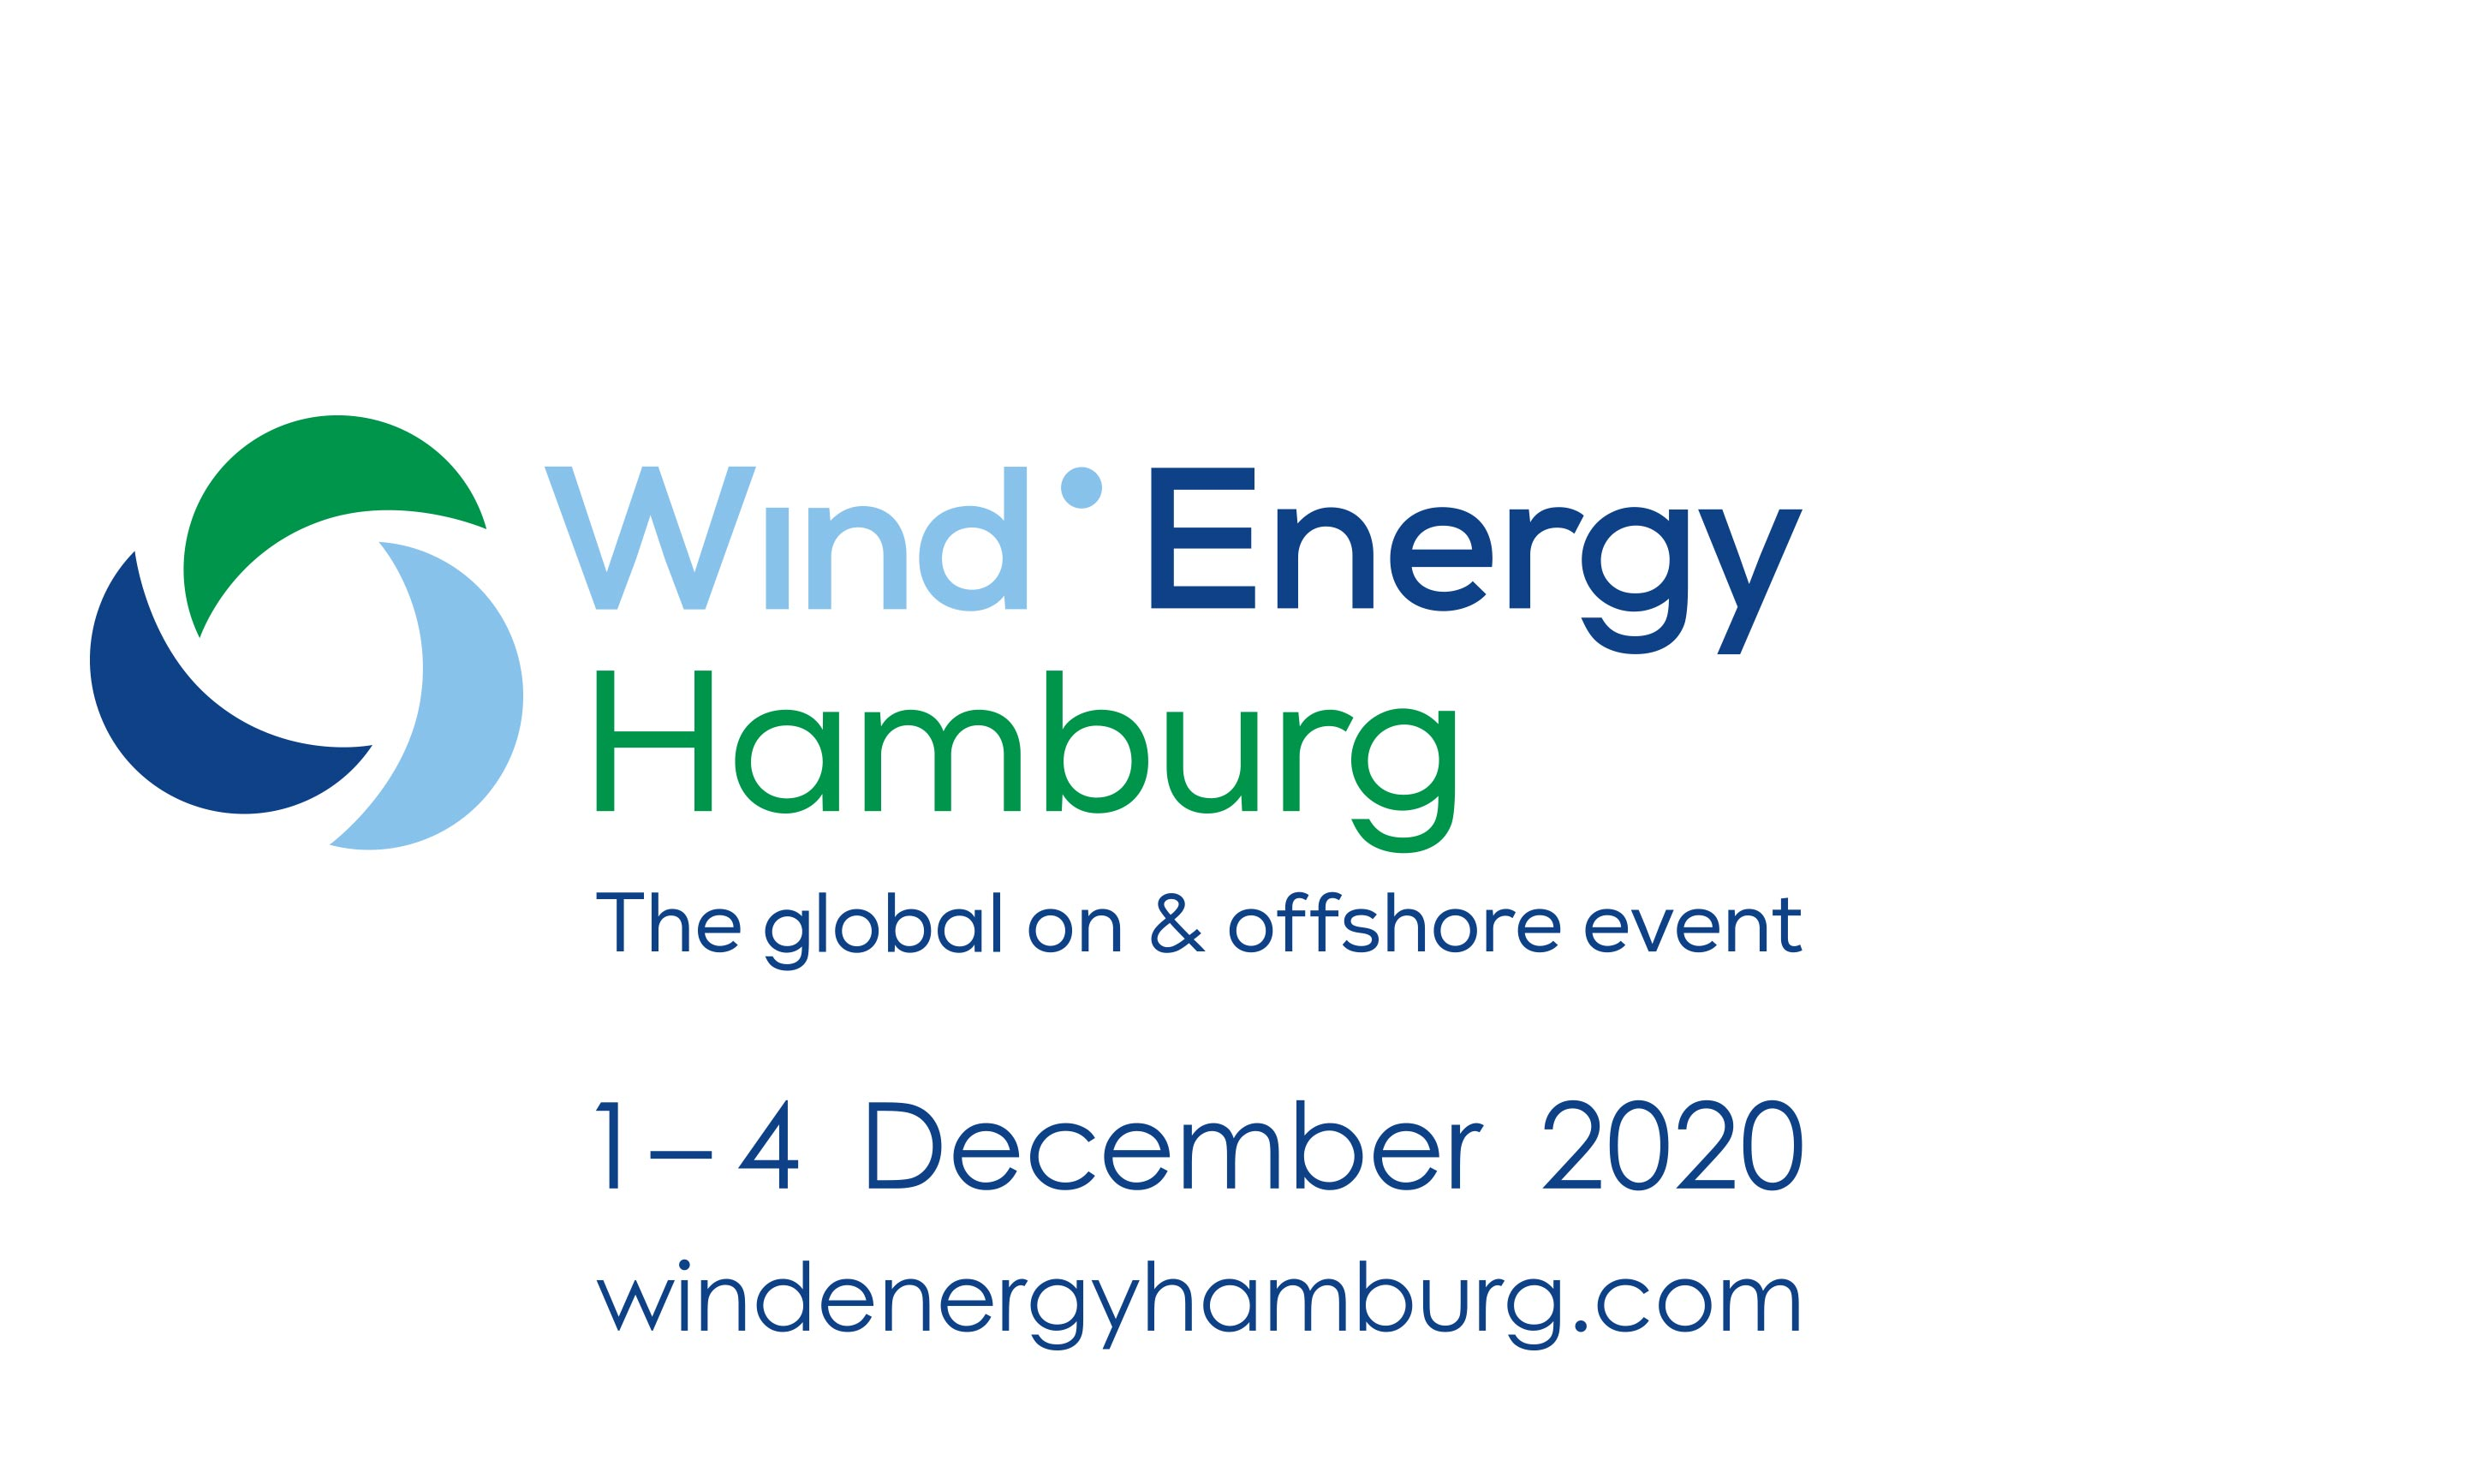 Idaswind - Wind Energy Hamburg